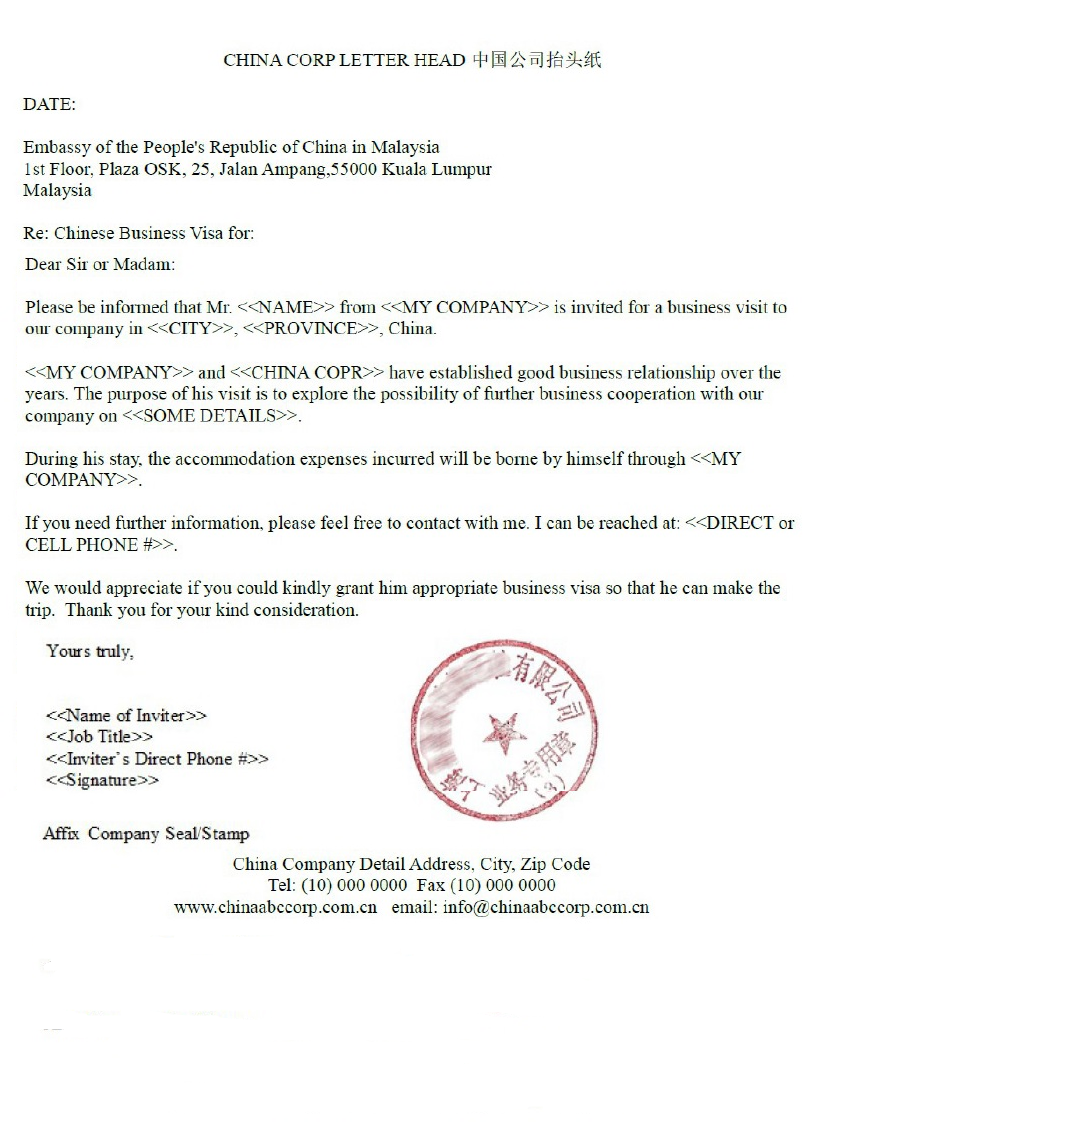 Sample invitation letter for business visa tripvisa save sample invitation letter stopboris